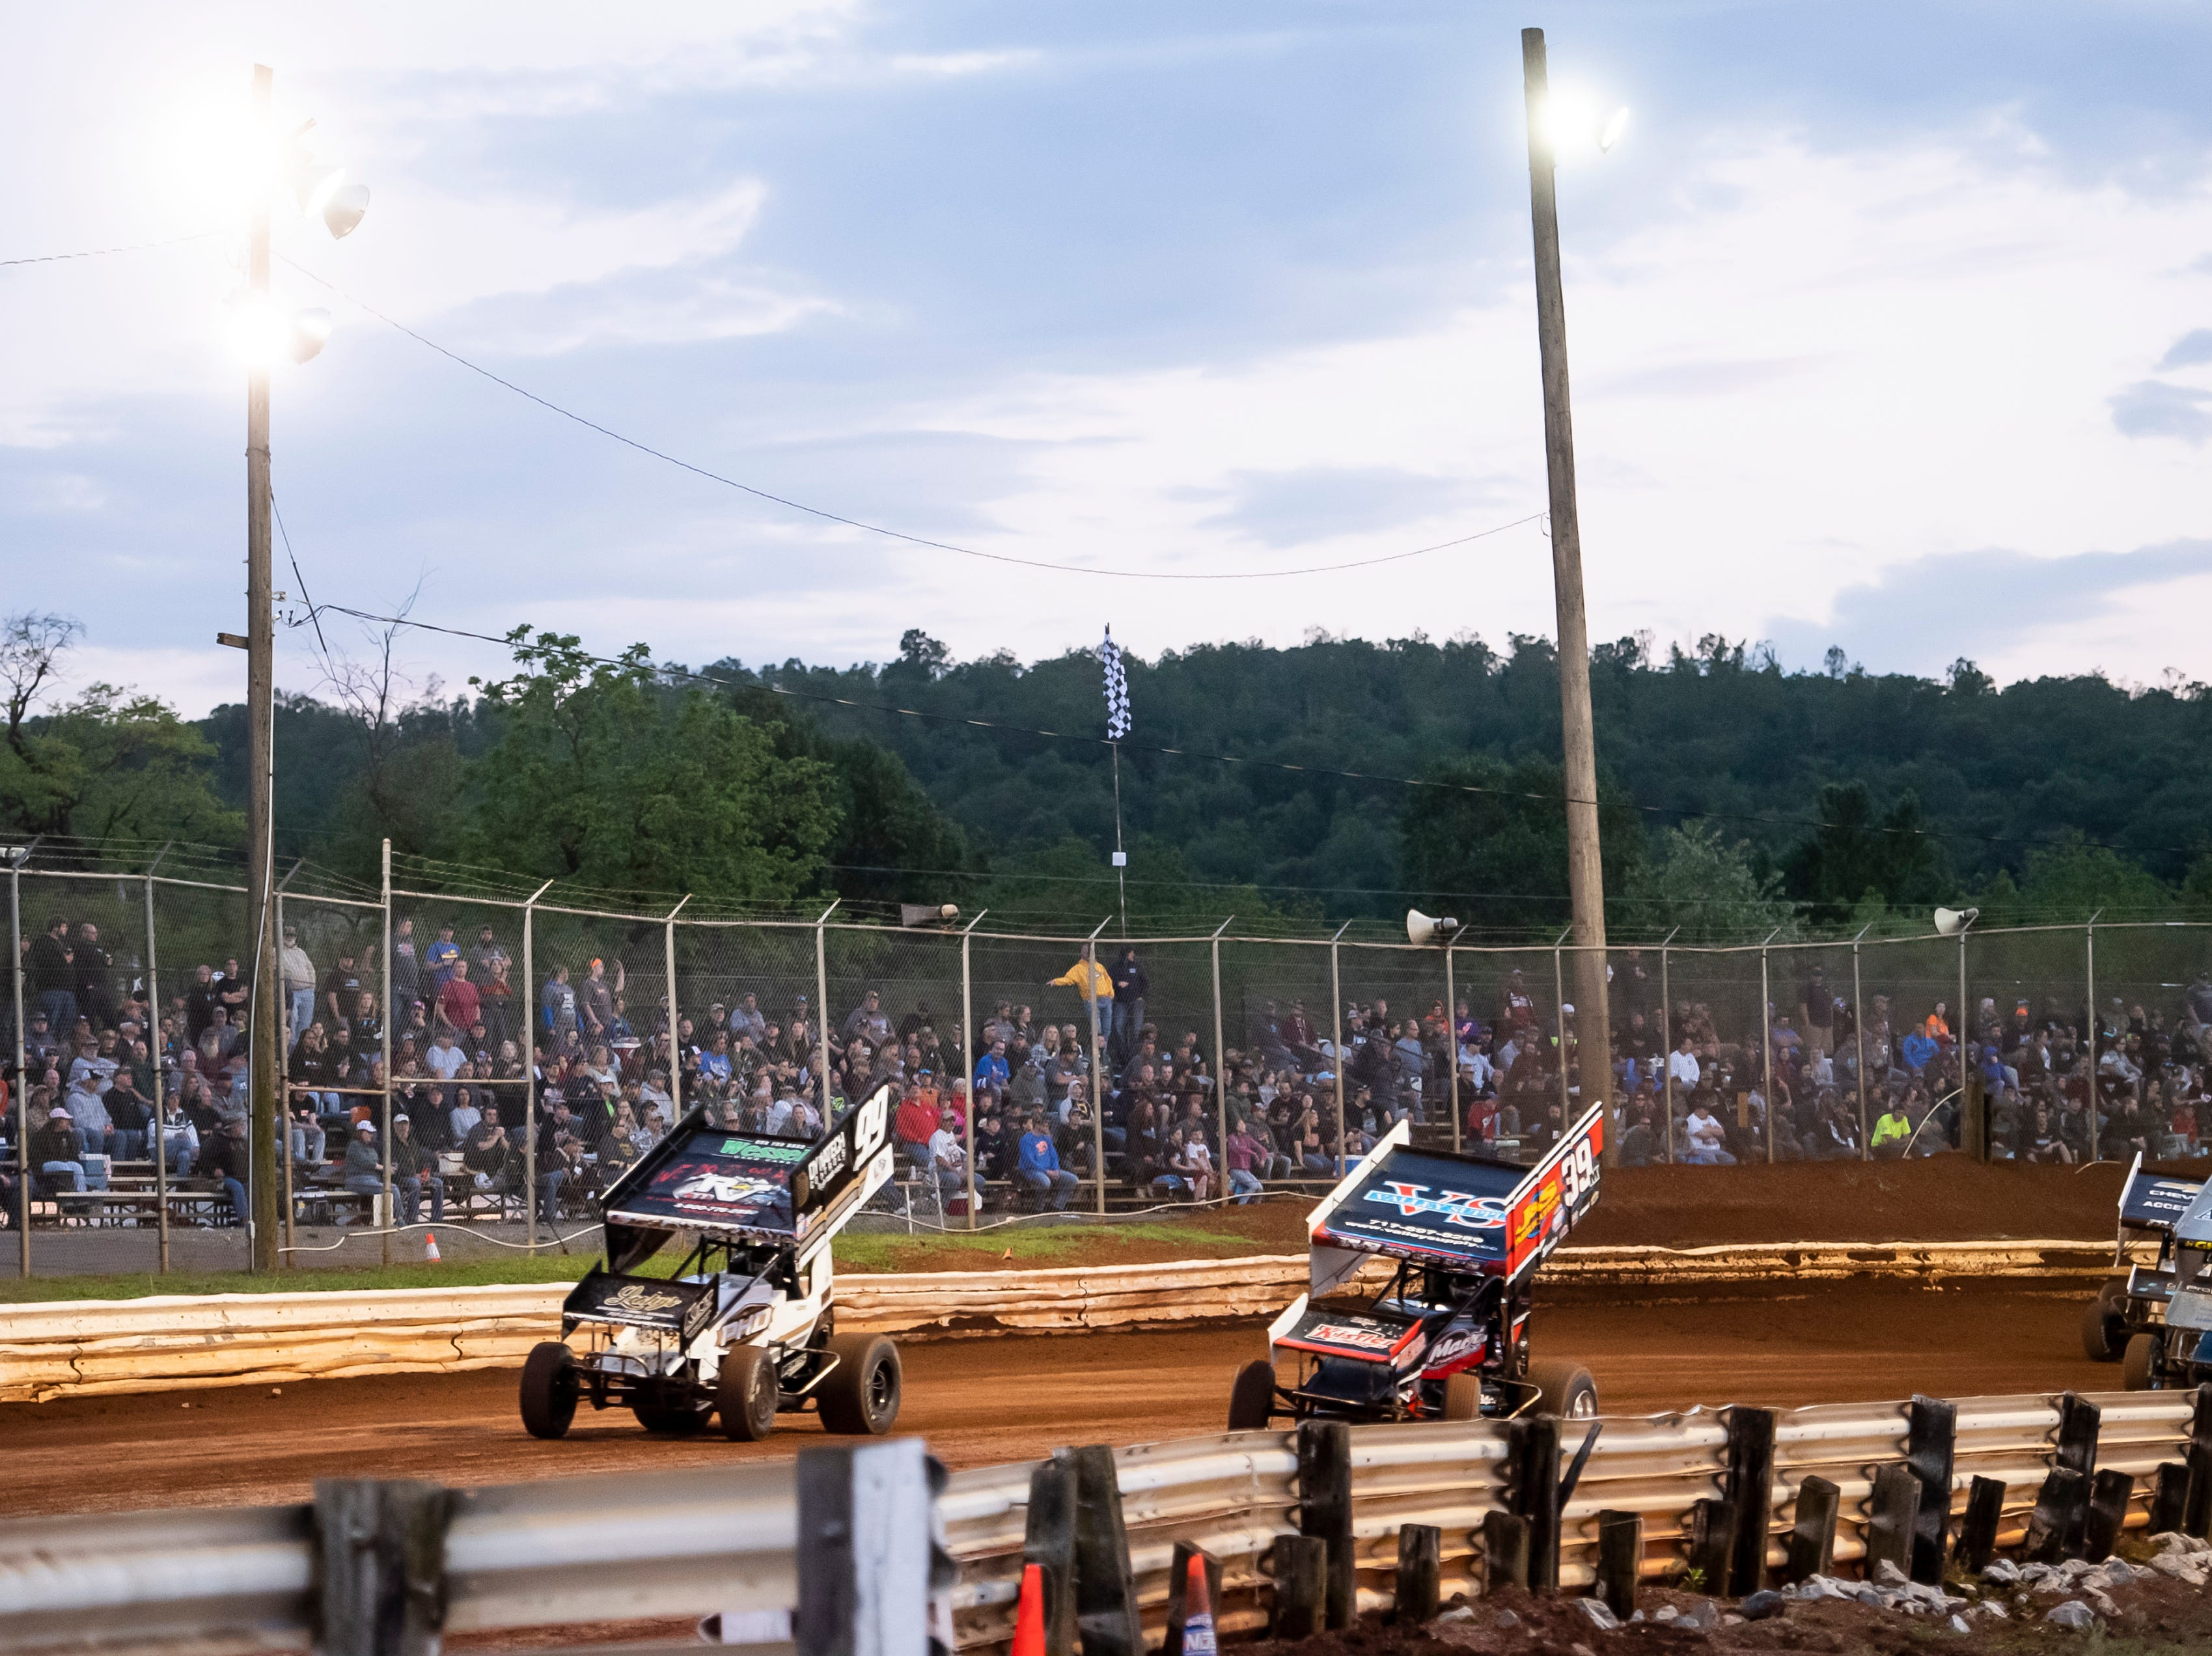 Cars navigate turn number four during the World of Outlaws Gettysburg Clash at Lincoln Speedway in Abbottstown on Wednesday, May 15, 2019.